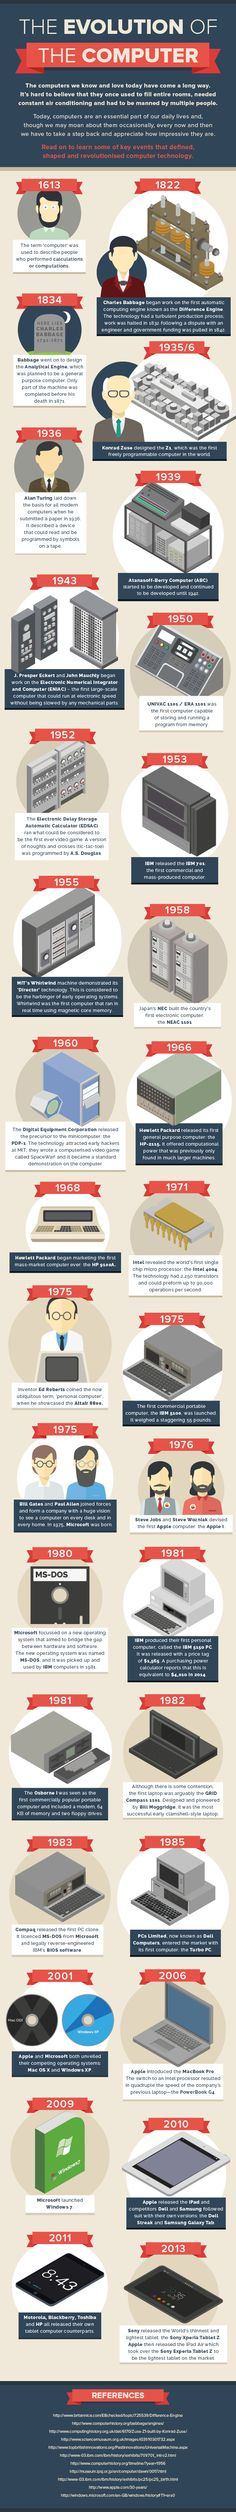 The Evolution of the Computer. Some of key events that revolutionased computer technology.